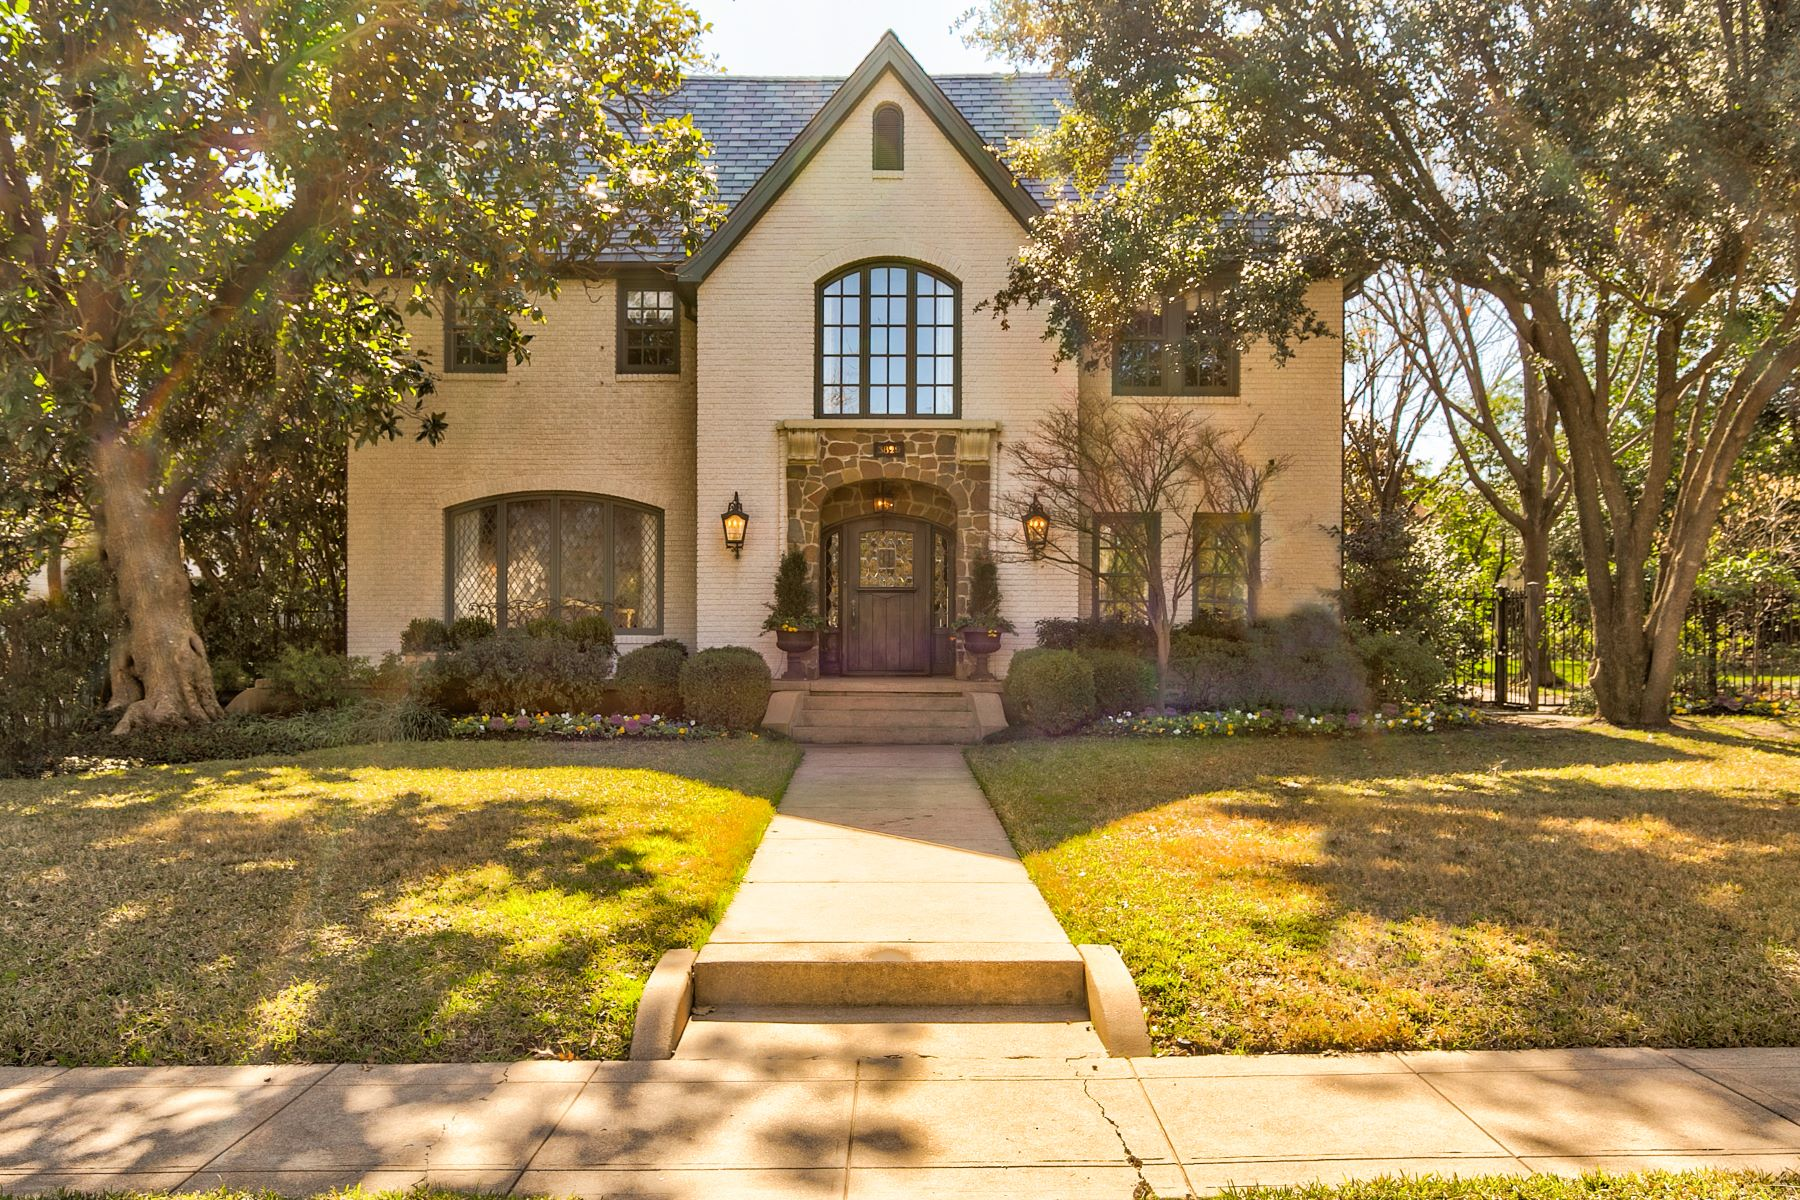 Single Family Homes for Sale at First home on Monticello Drive, built in 1935 3829 Monticello Drive Fort Worth, Texas 76107 United States